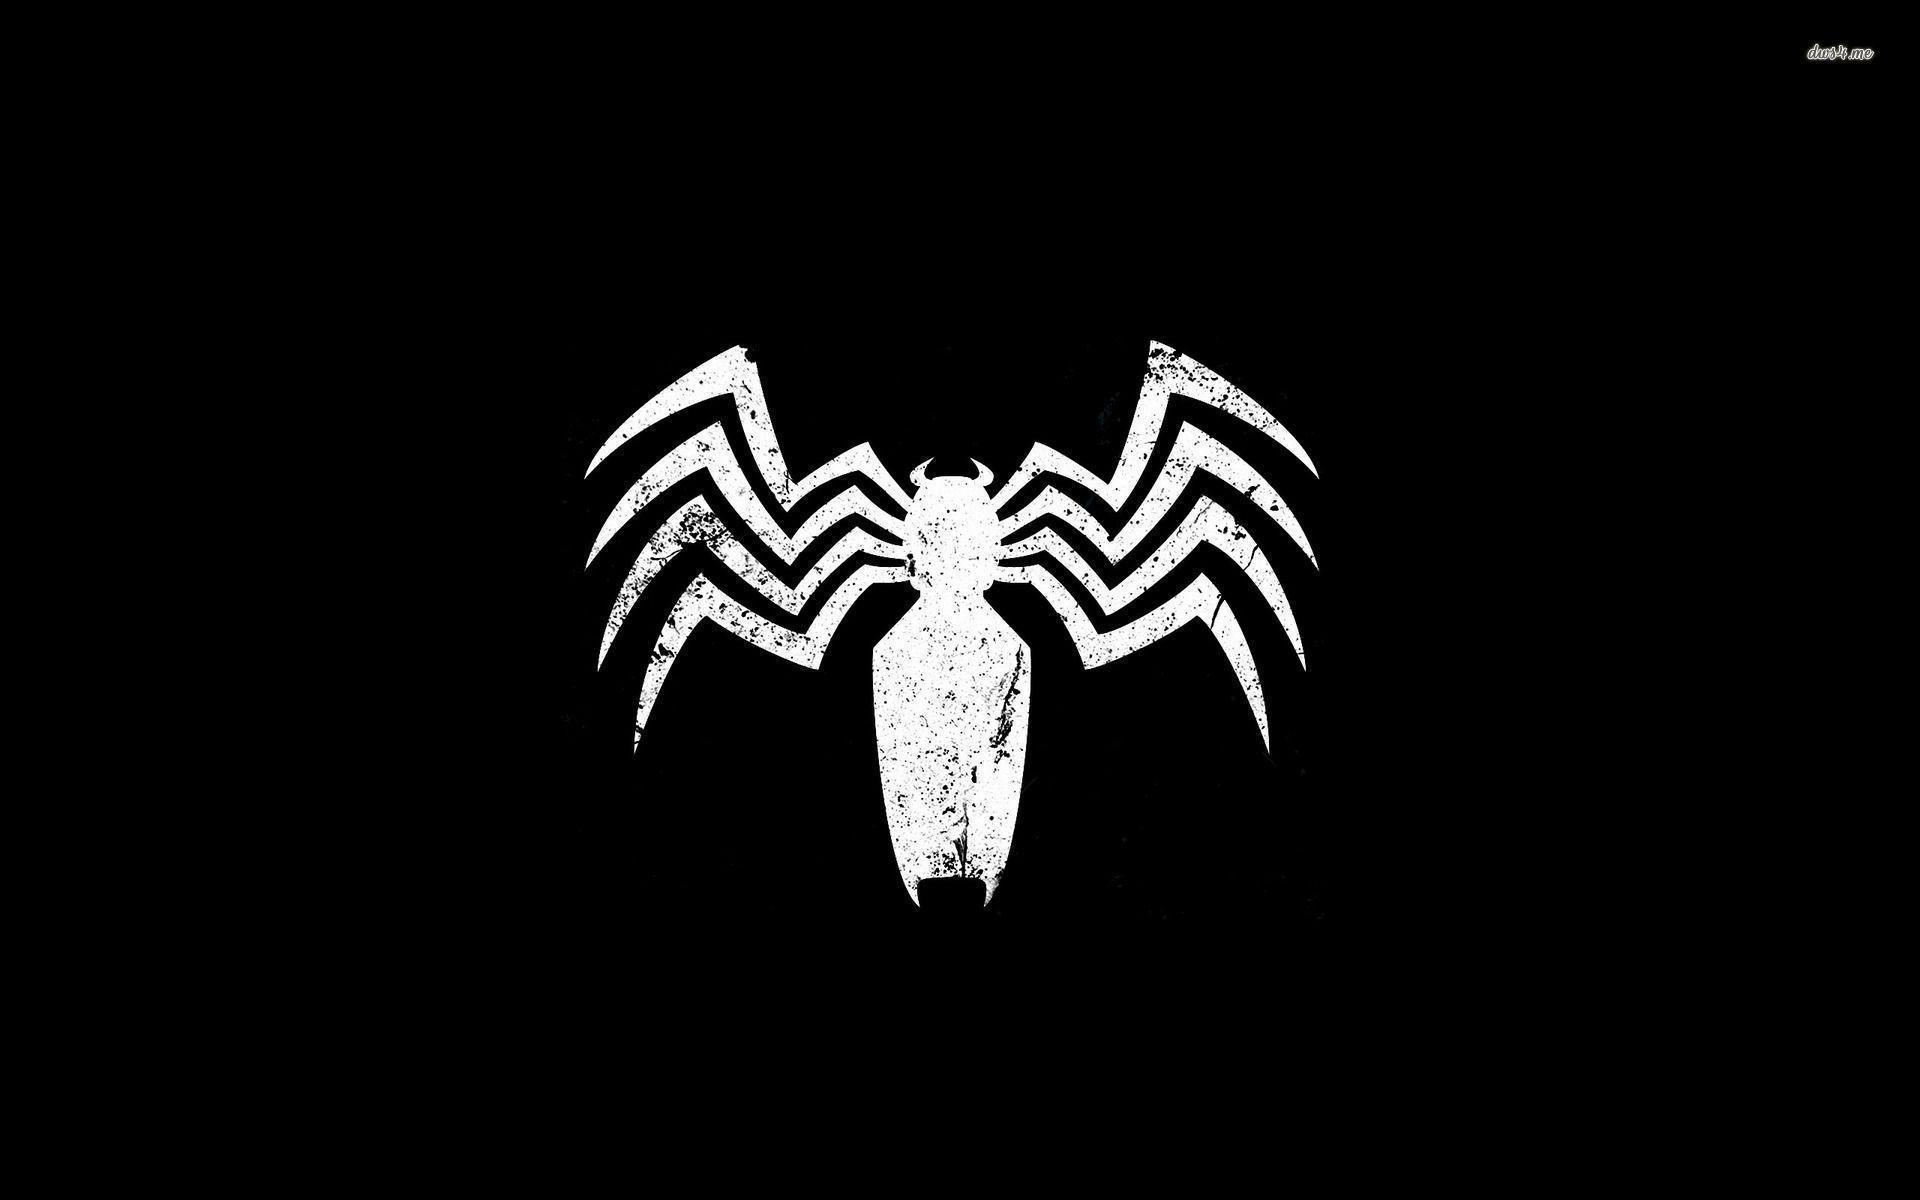 Venom Logo Wallpapers Top Free Venom Logo Backgrounds